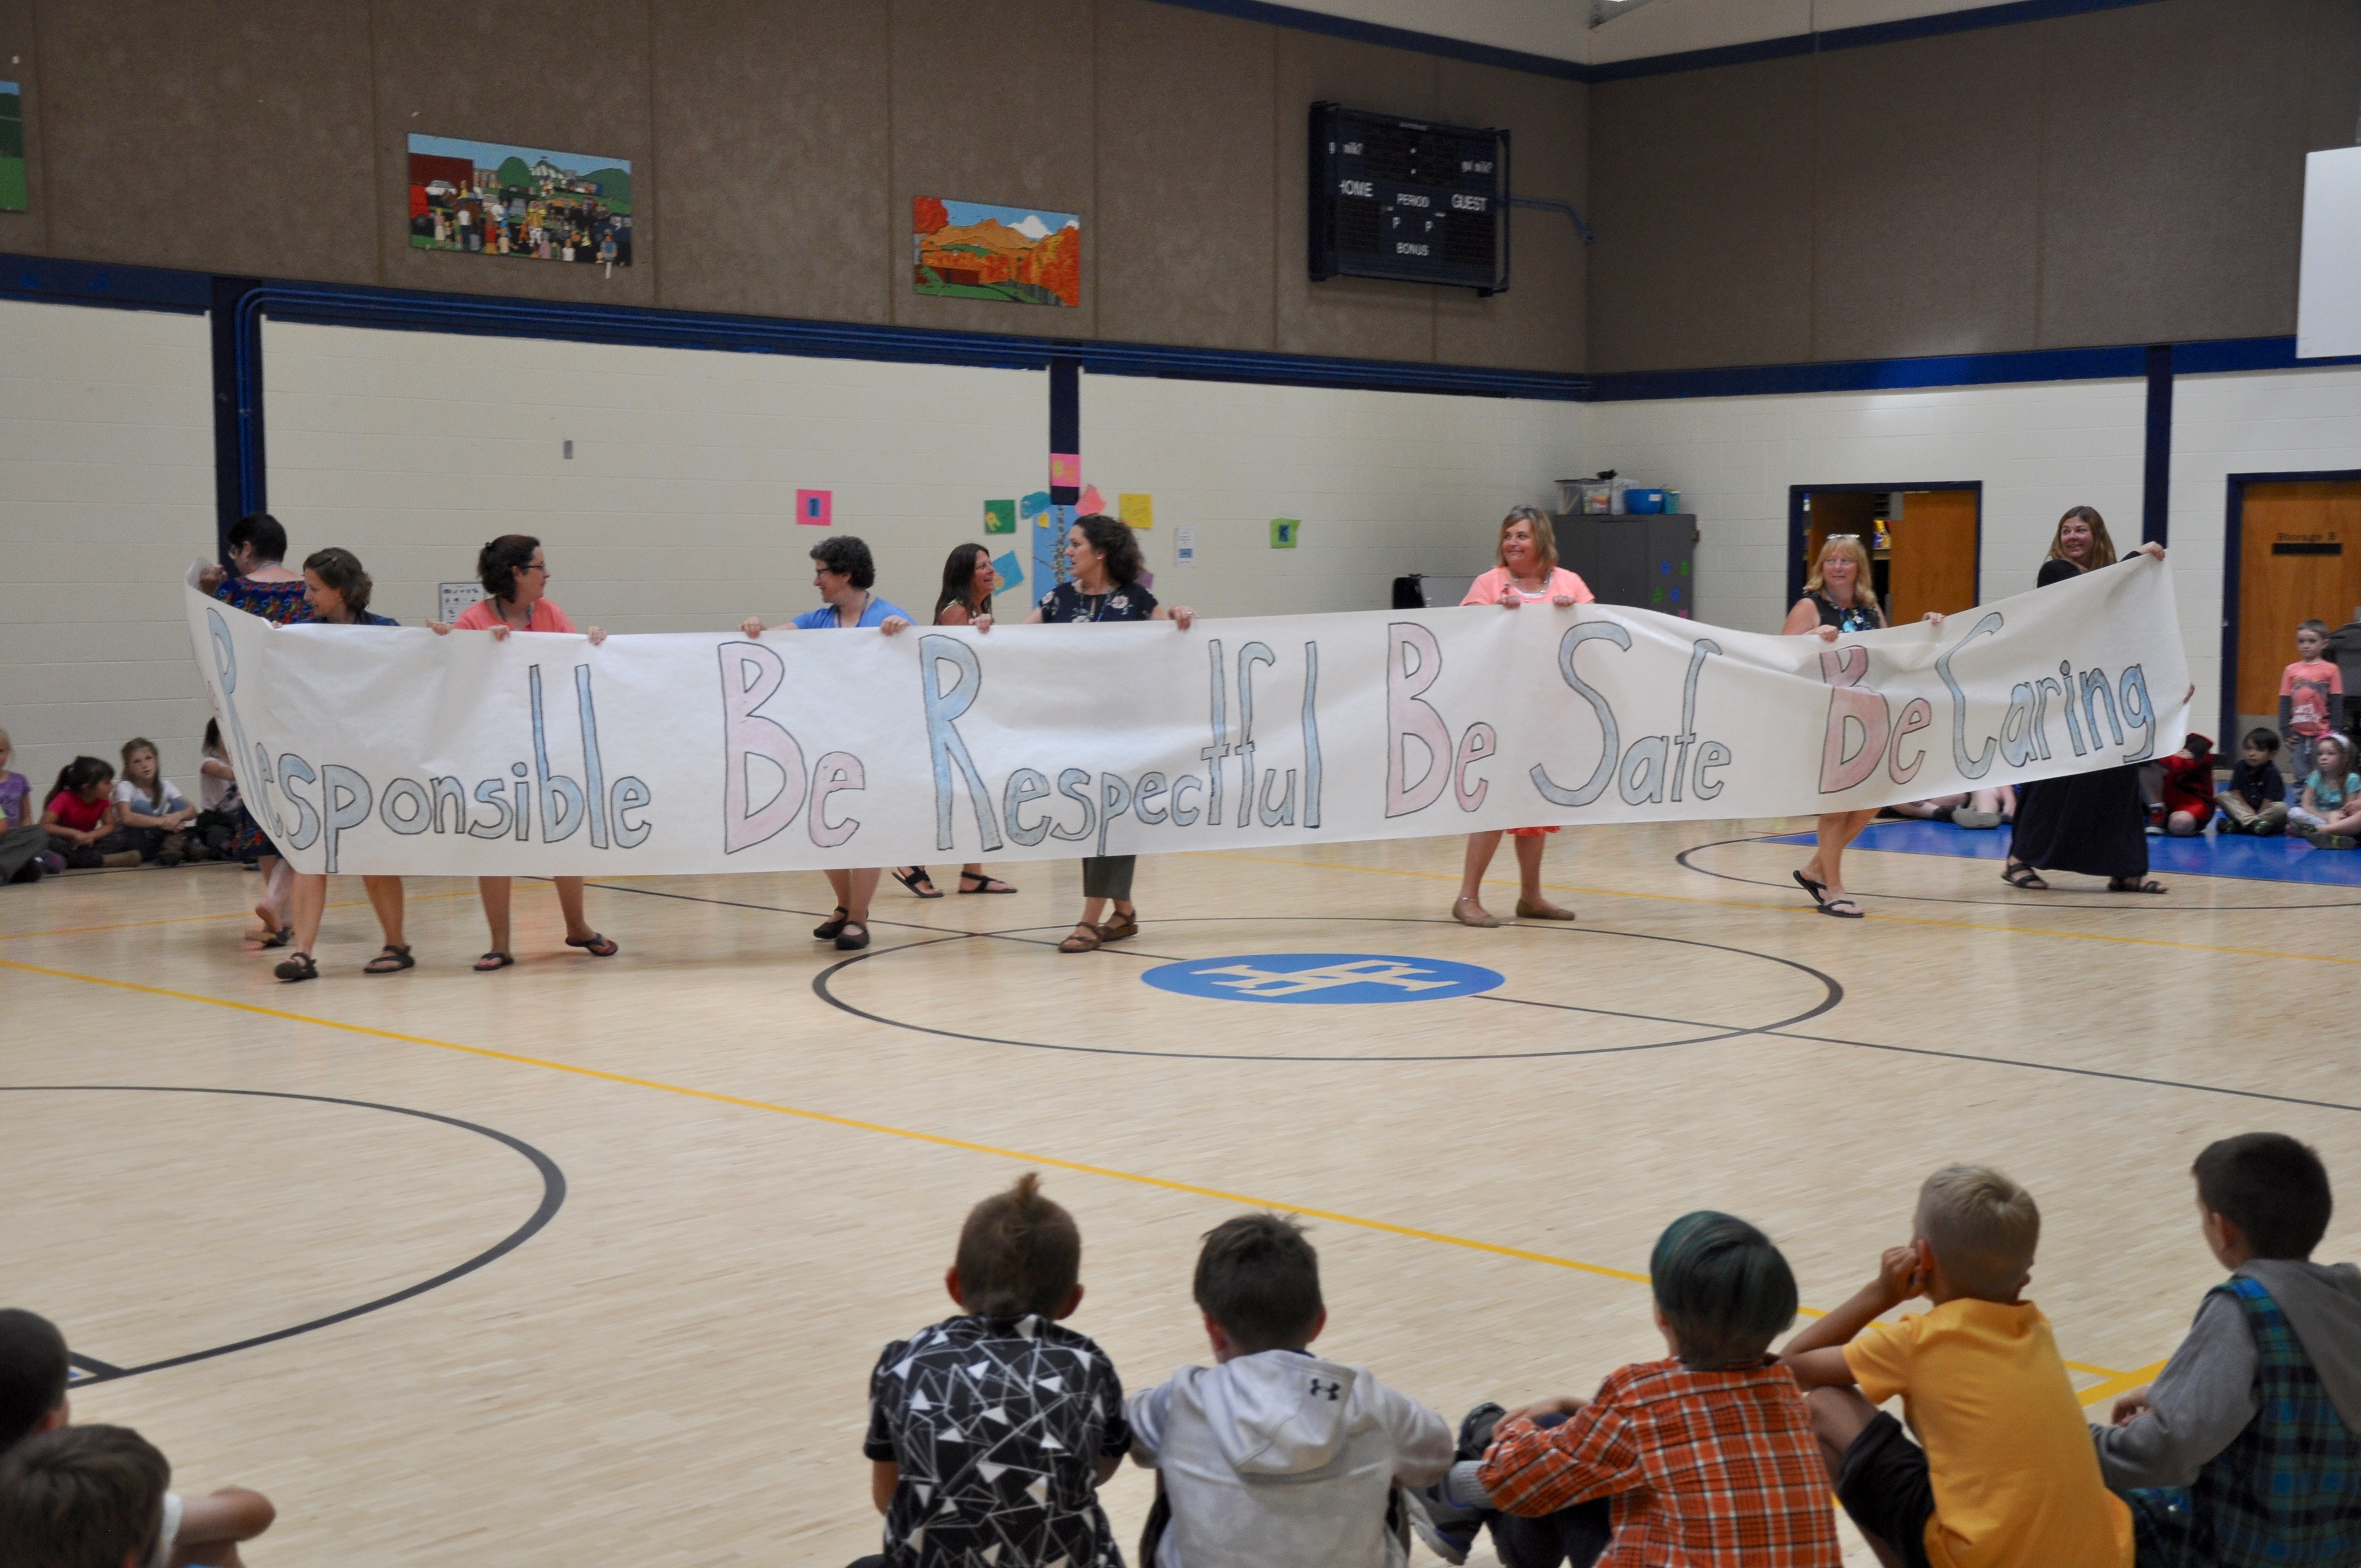 Fletcher students and staff review the school-wide expectations at a whole-school celebration.